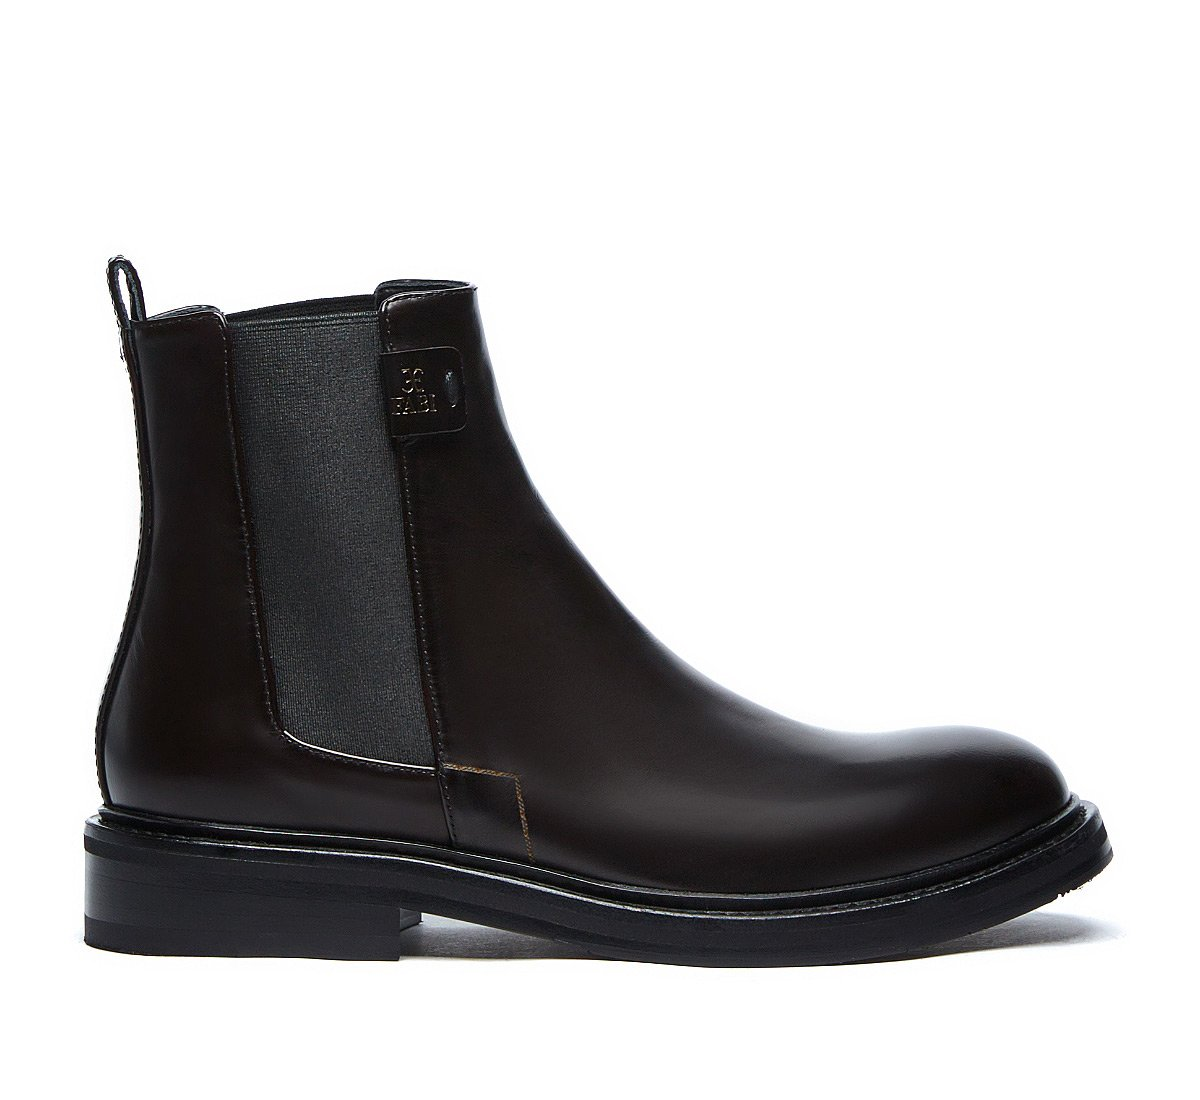 Beatle boot in soft calf leather